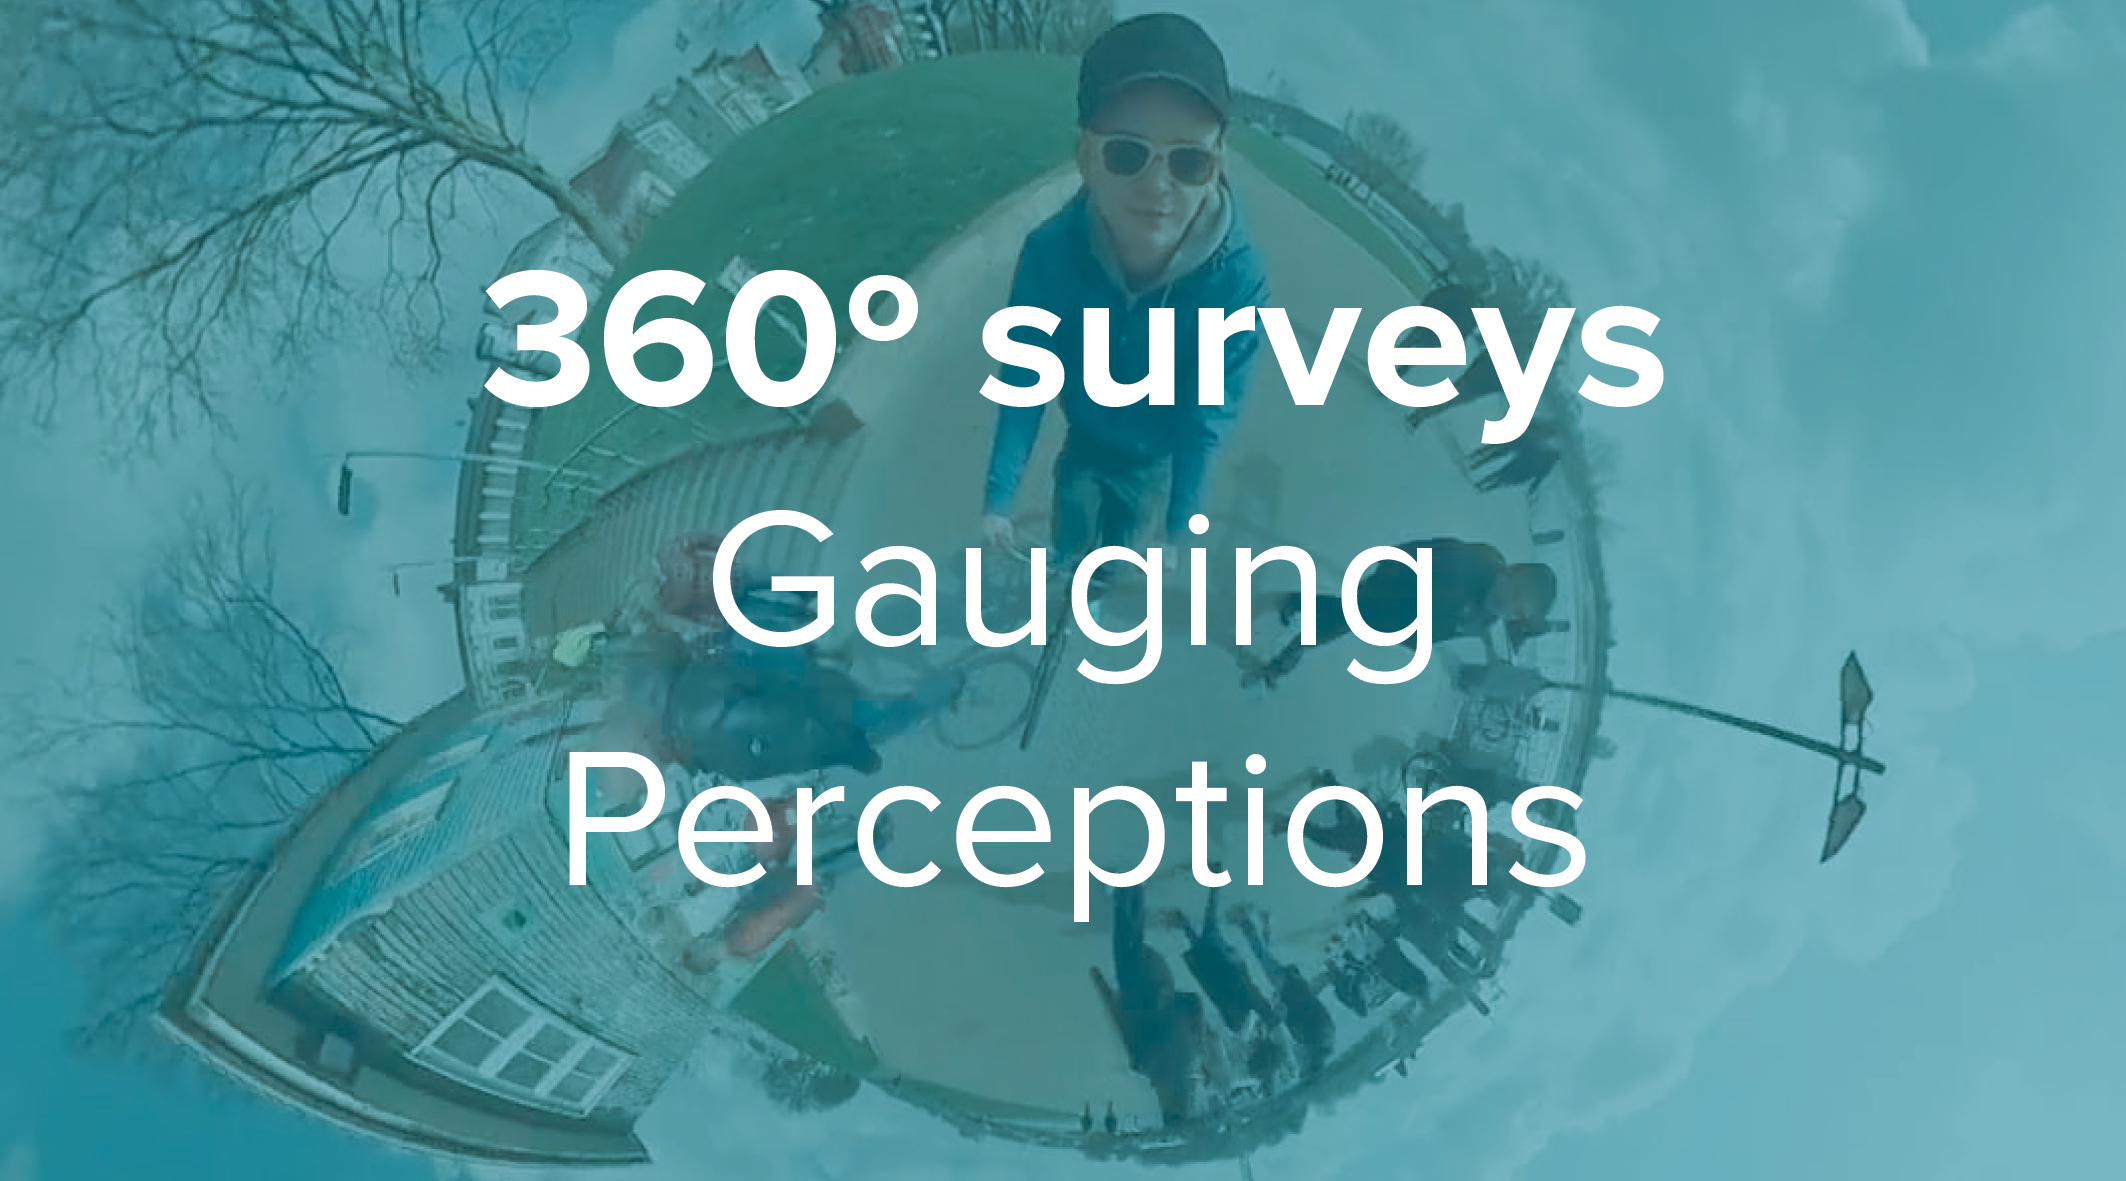 360 surveys.jpg